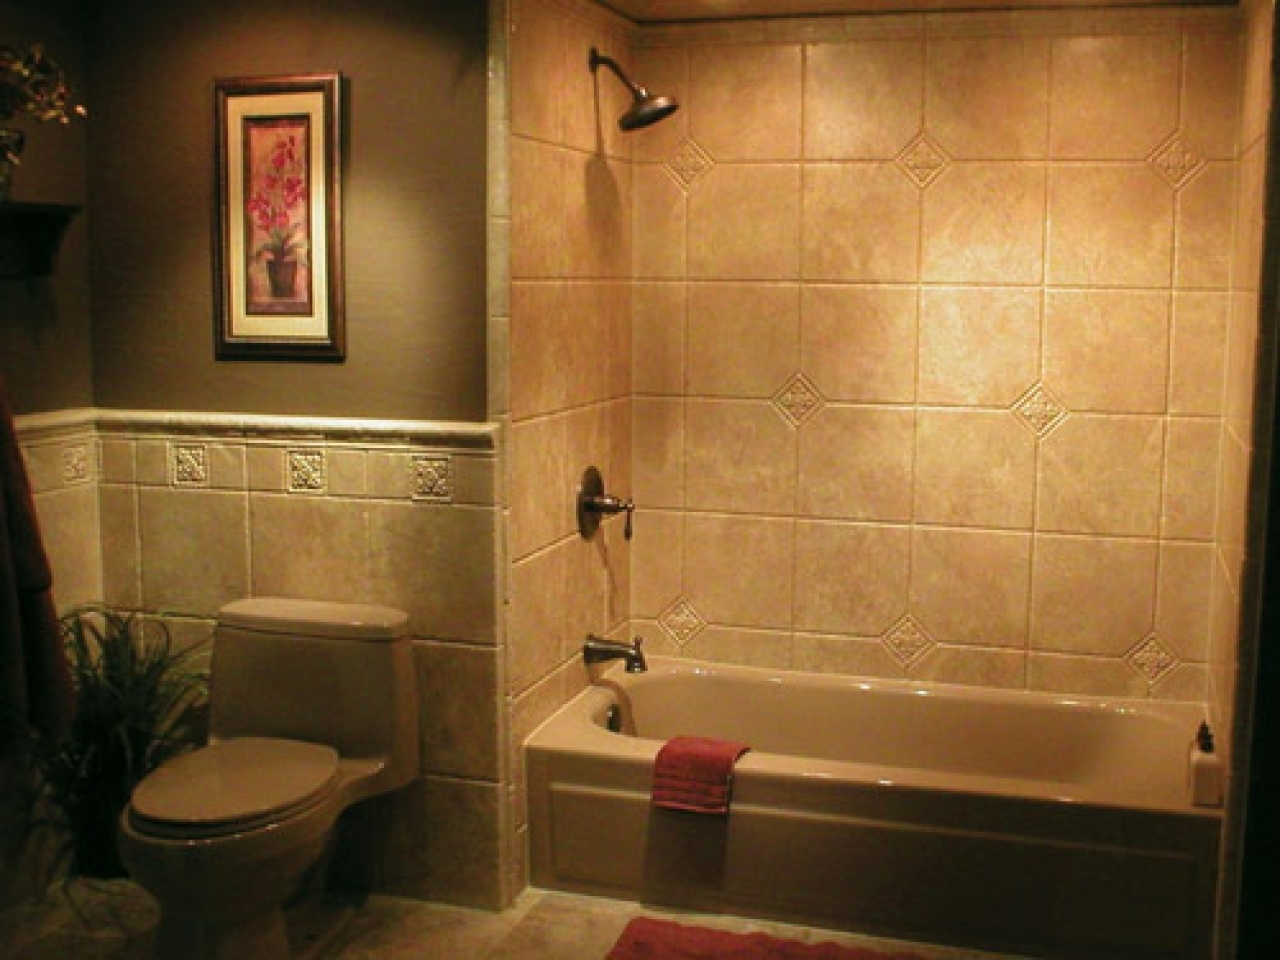 Easy Bathroom Renovation Ideas : Bathroom remodel ideas fashion trends